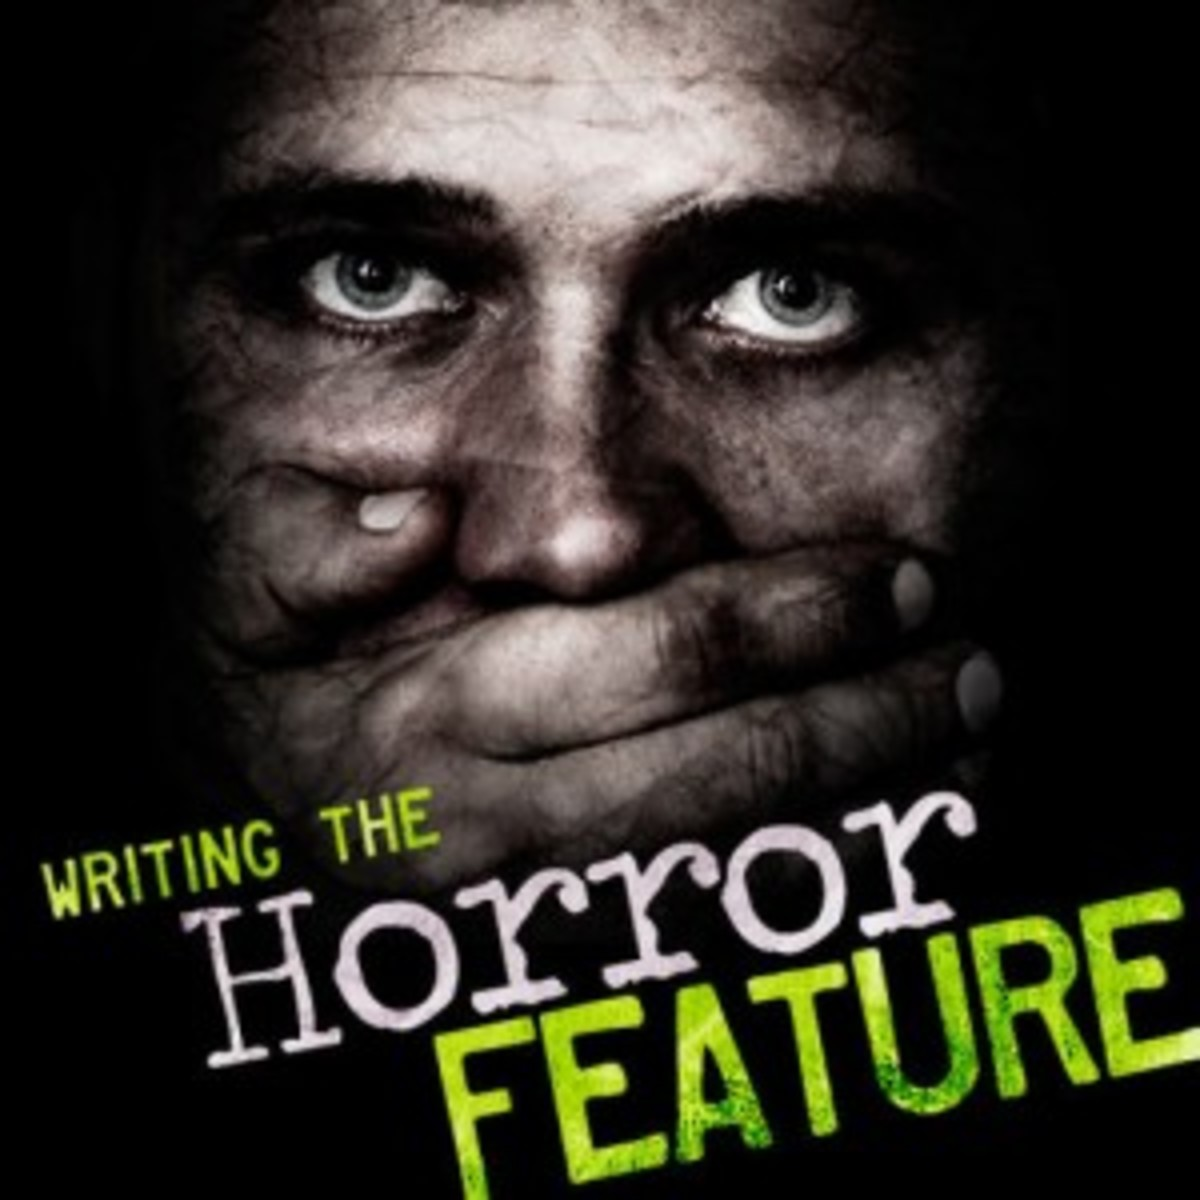 ws_horrorfeature-500_medium